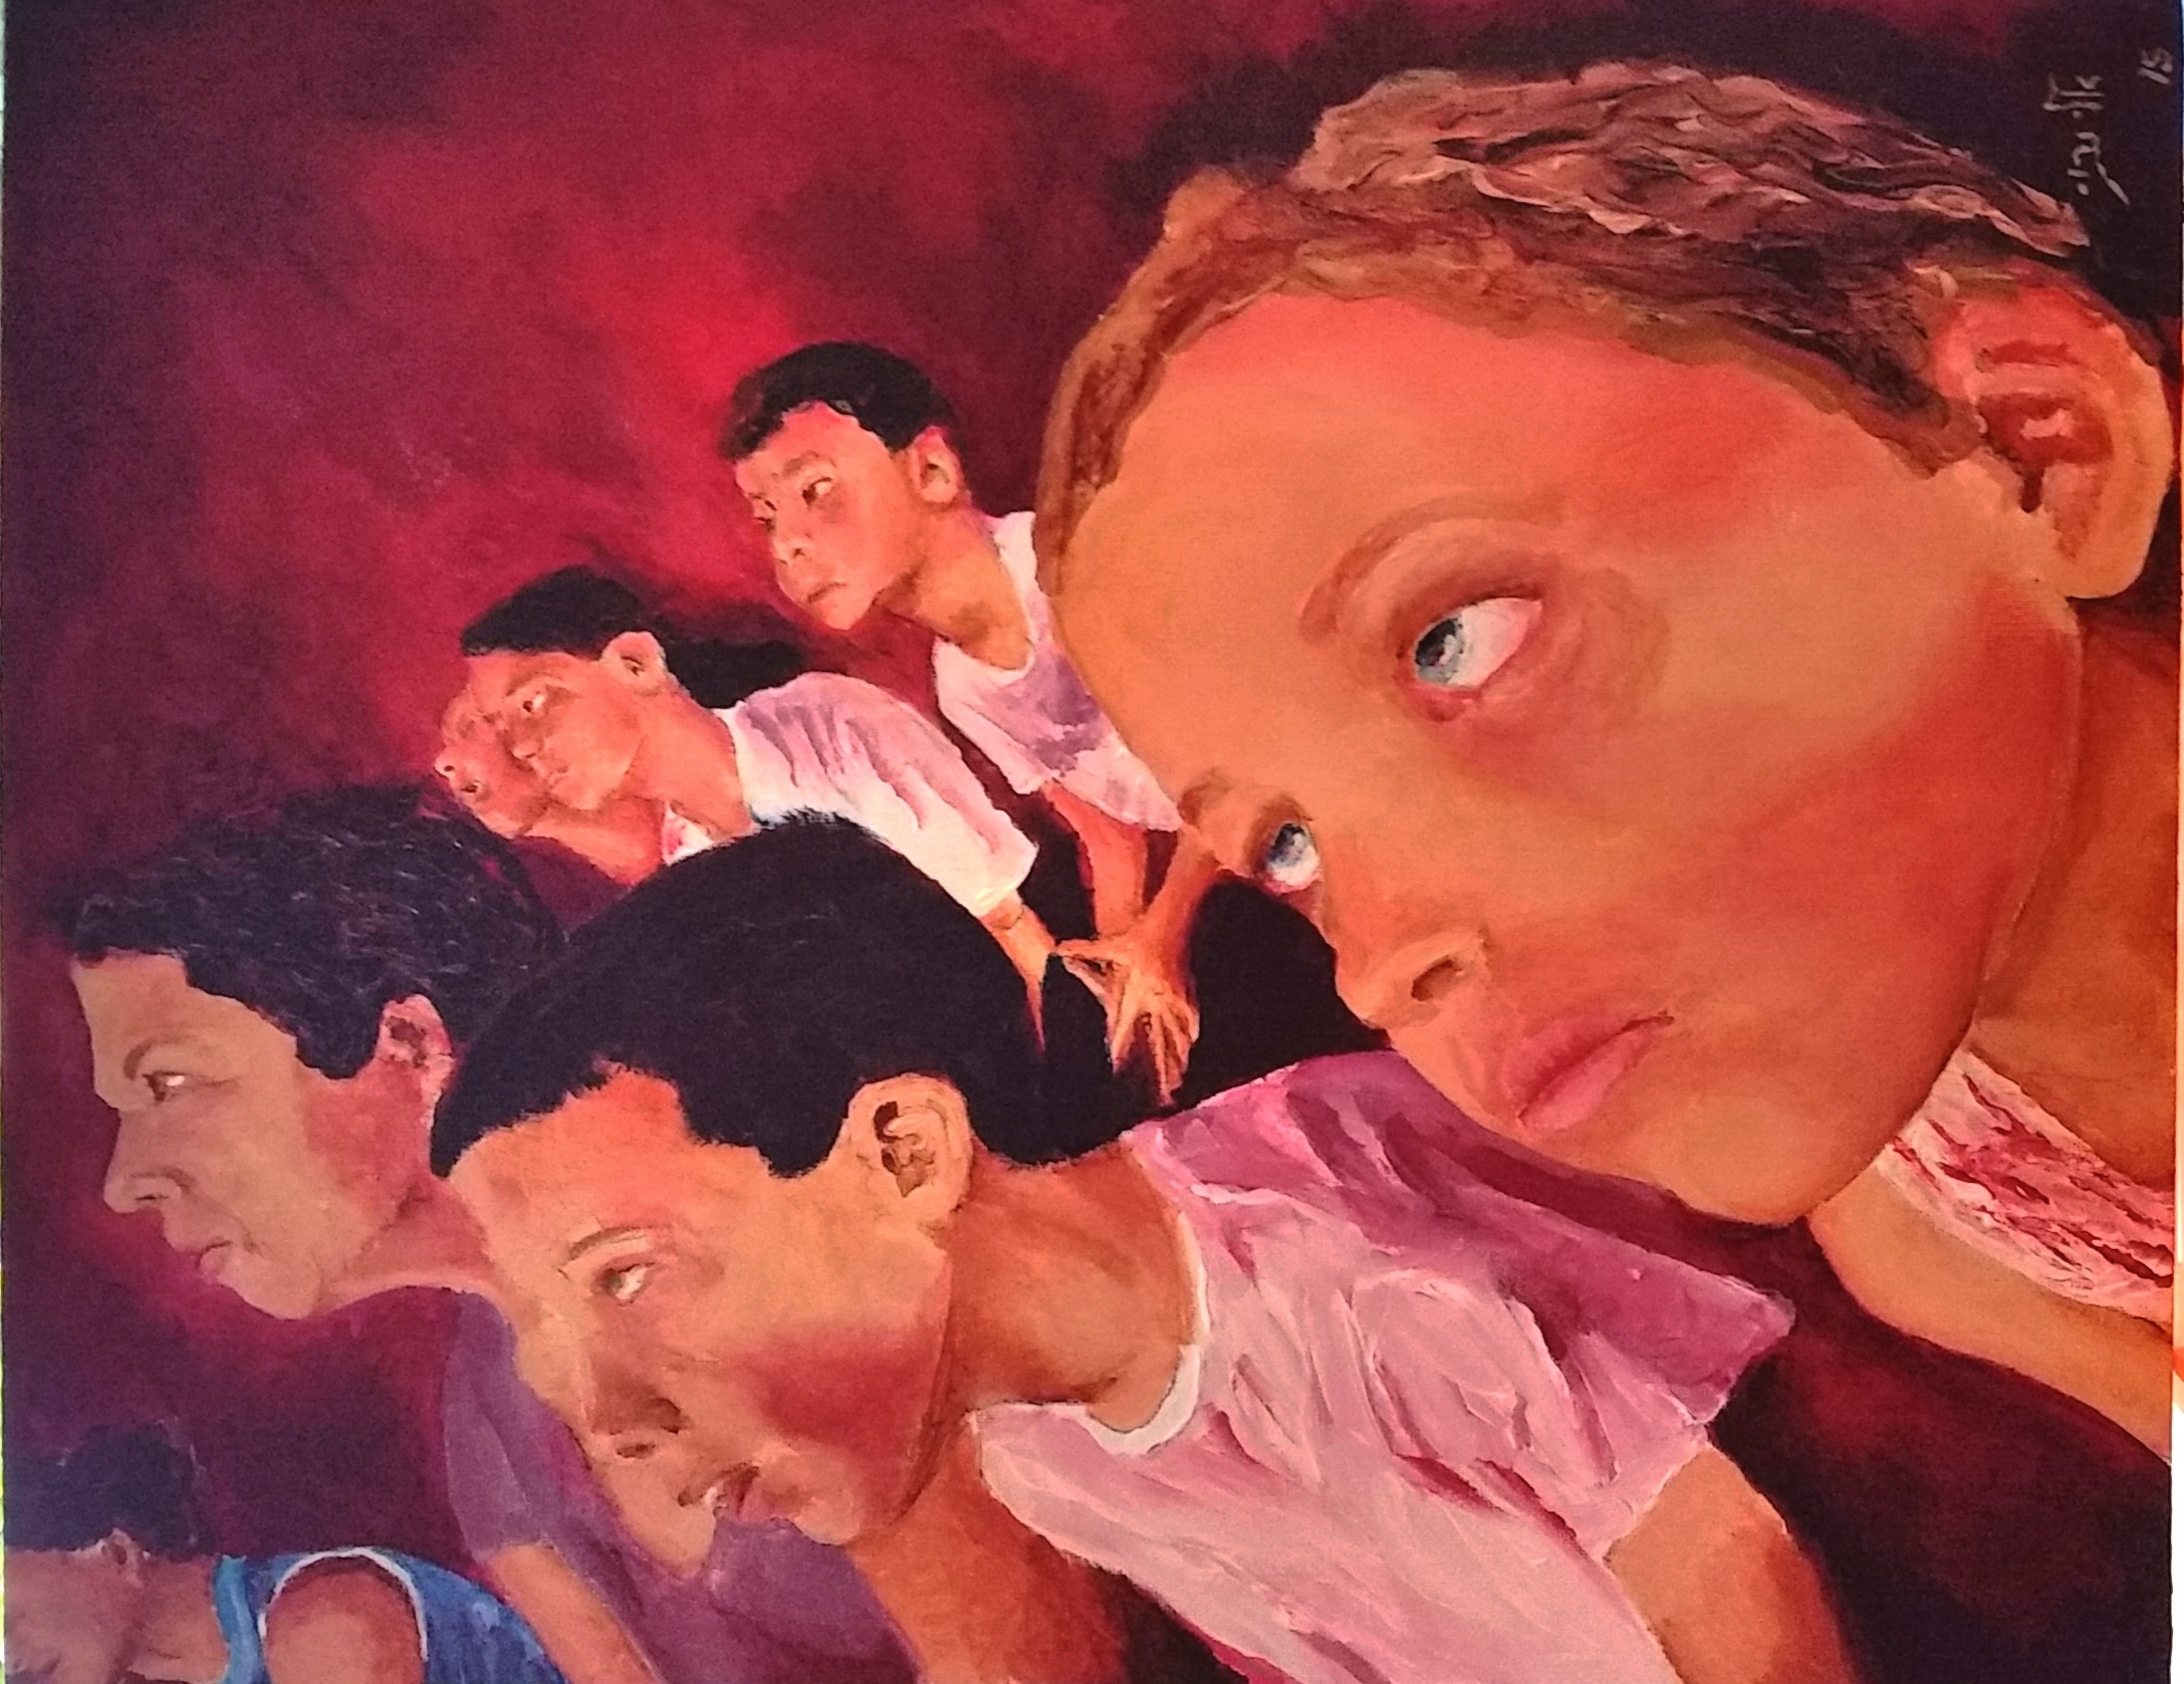 Under the Circus lights   Acrylic 40-50